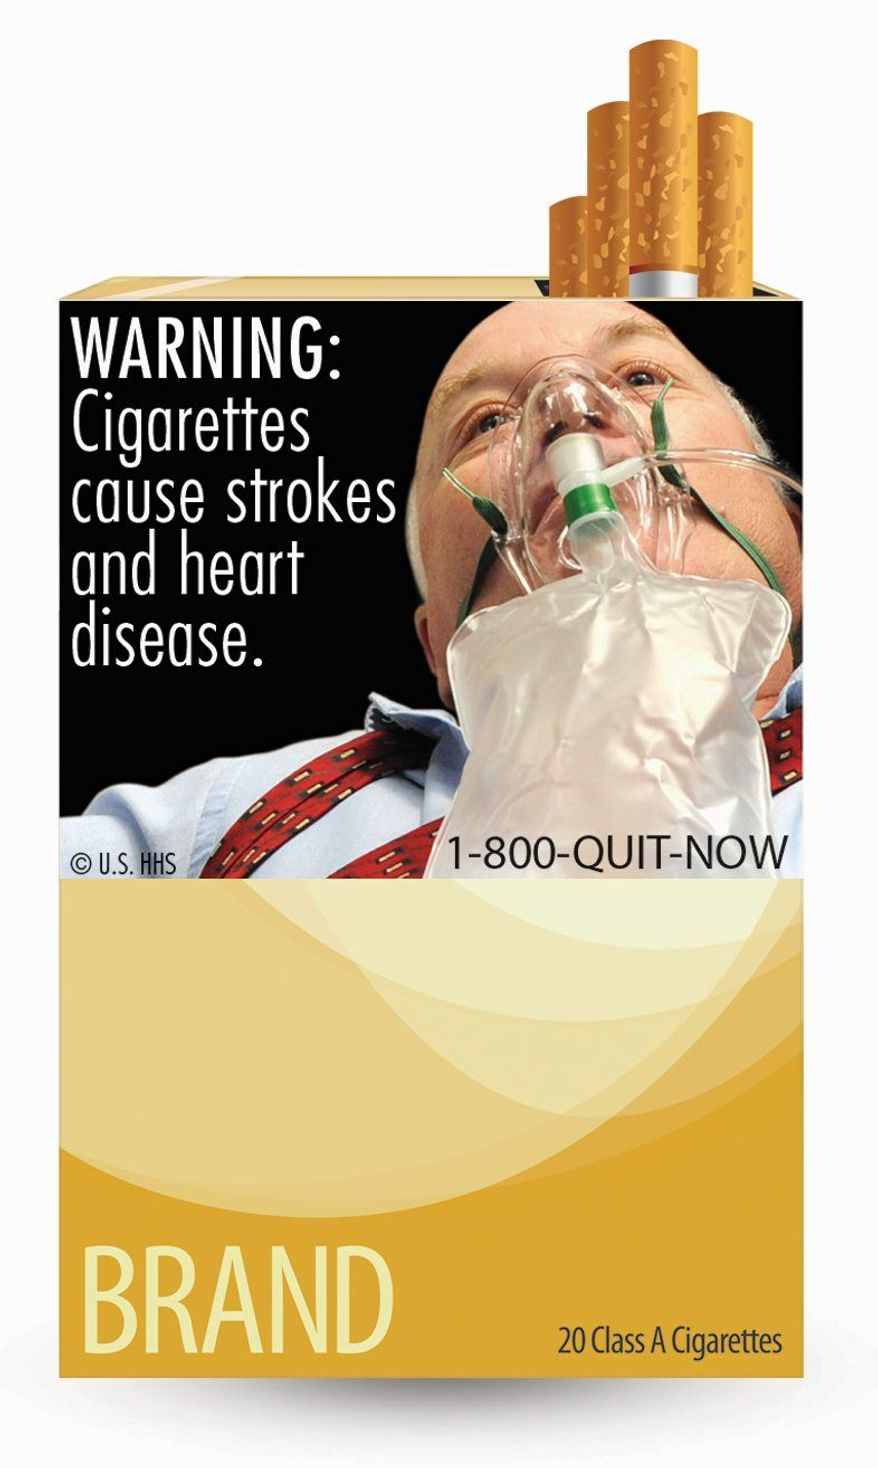 ASSOCIATED PRESS This image, provided by the U.S. Food and Drug Administration, is one of nine new warning labels that cigarette makers must use by the fall of 2012. In the most significant change to U.S. cigarette packs in 25 years, the FDA's the new warning labels graphically depict the health hazards of tobacco use.